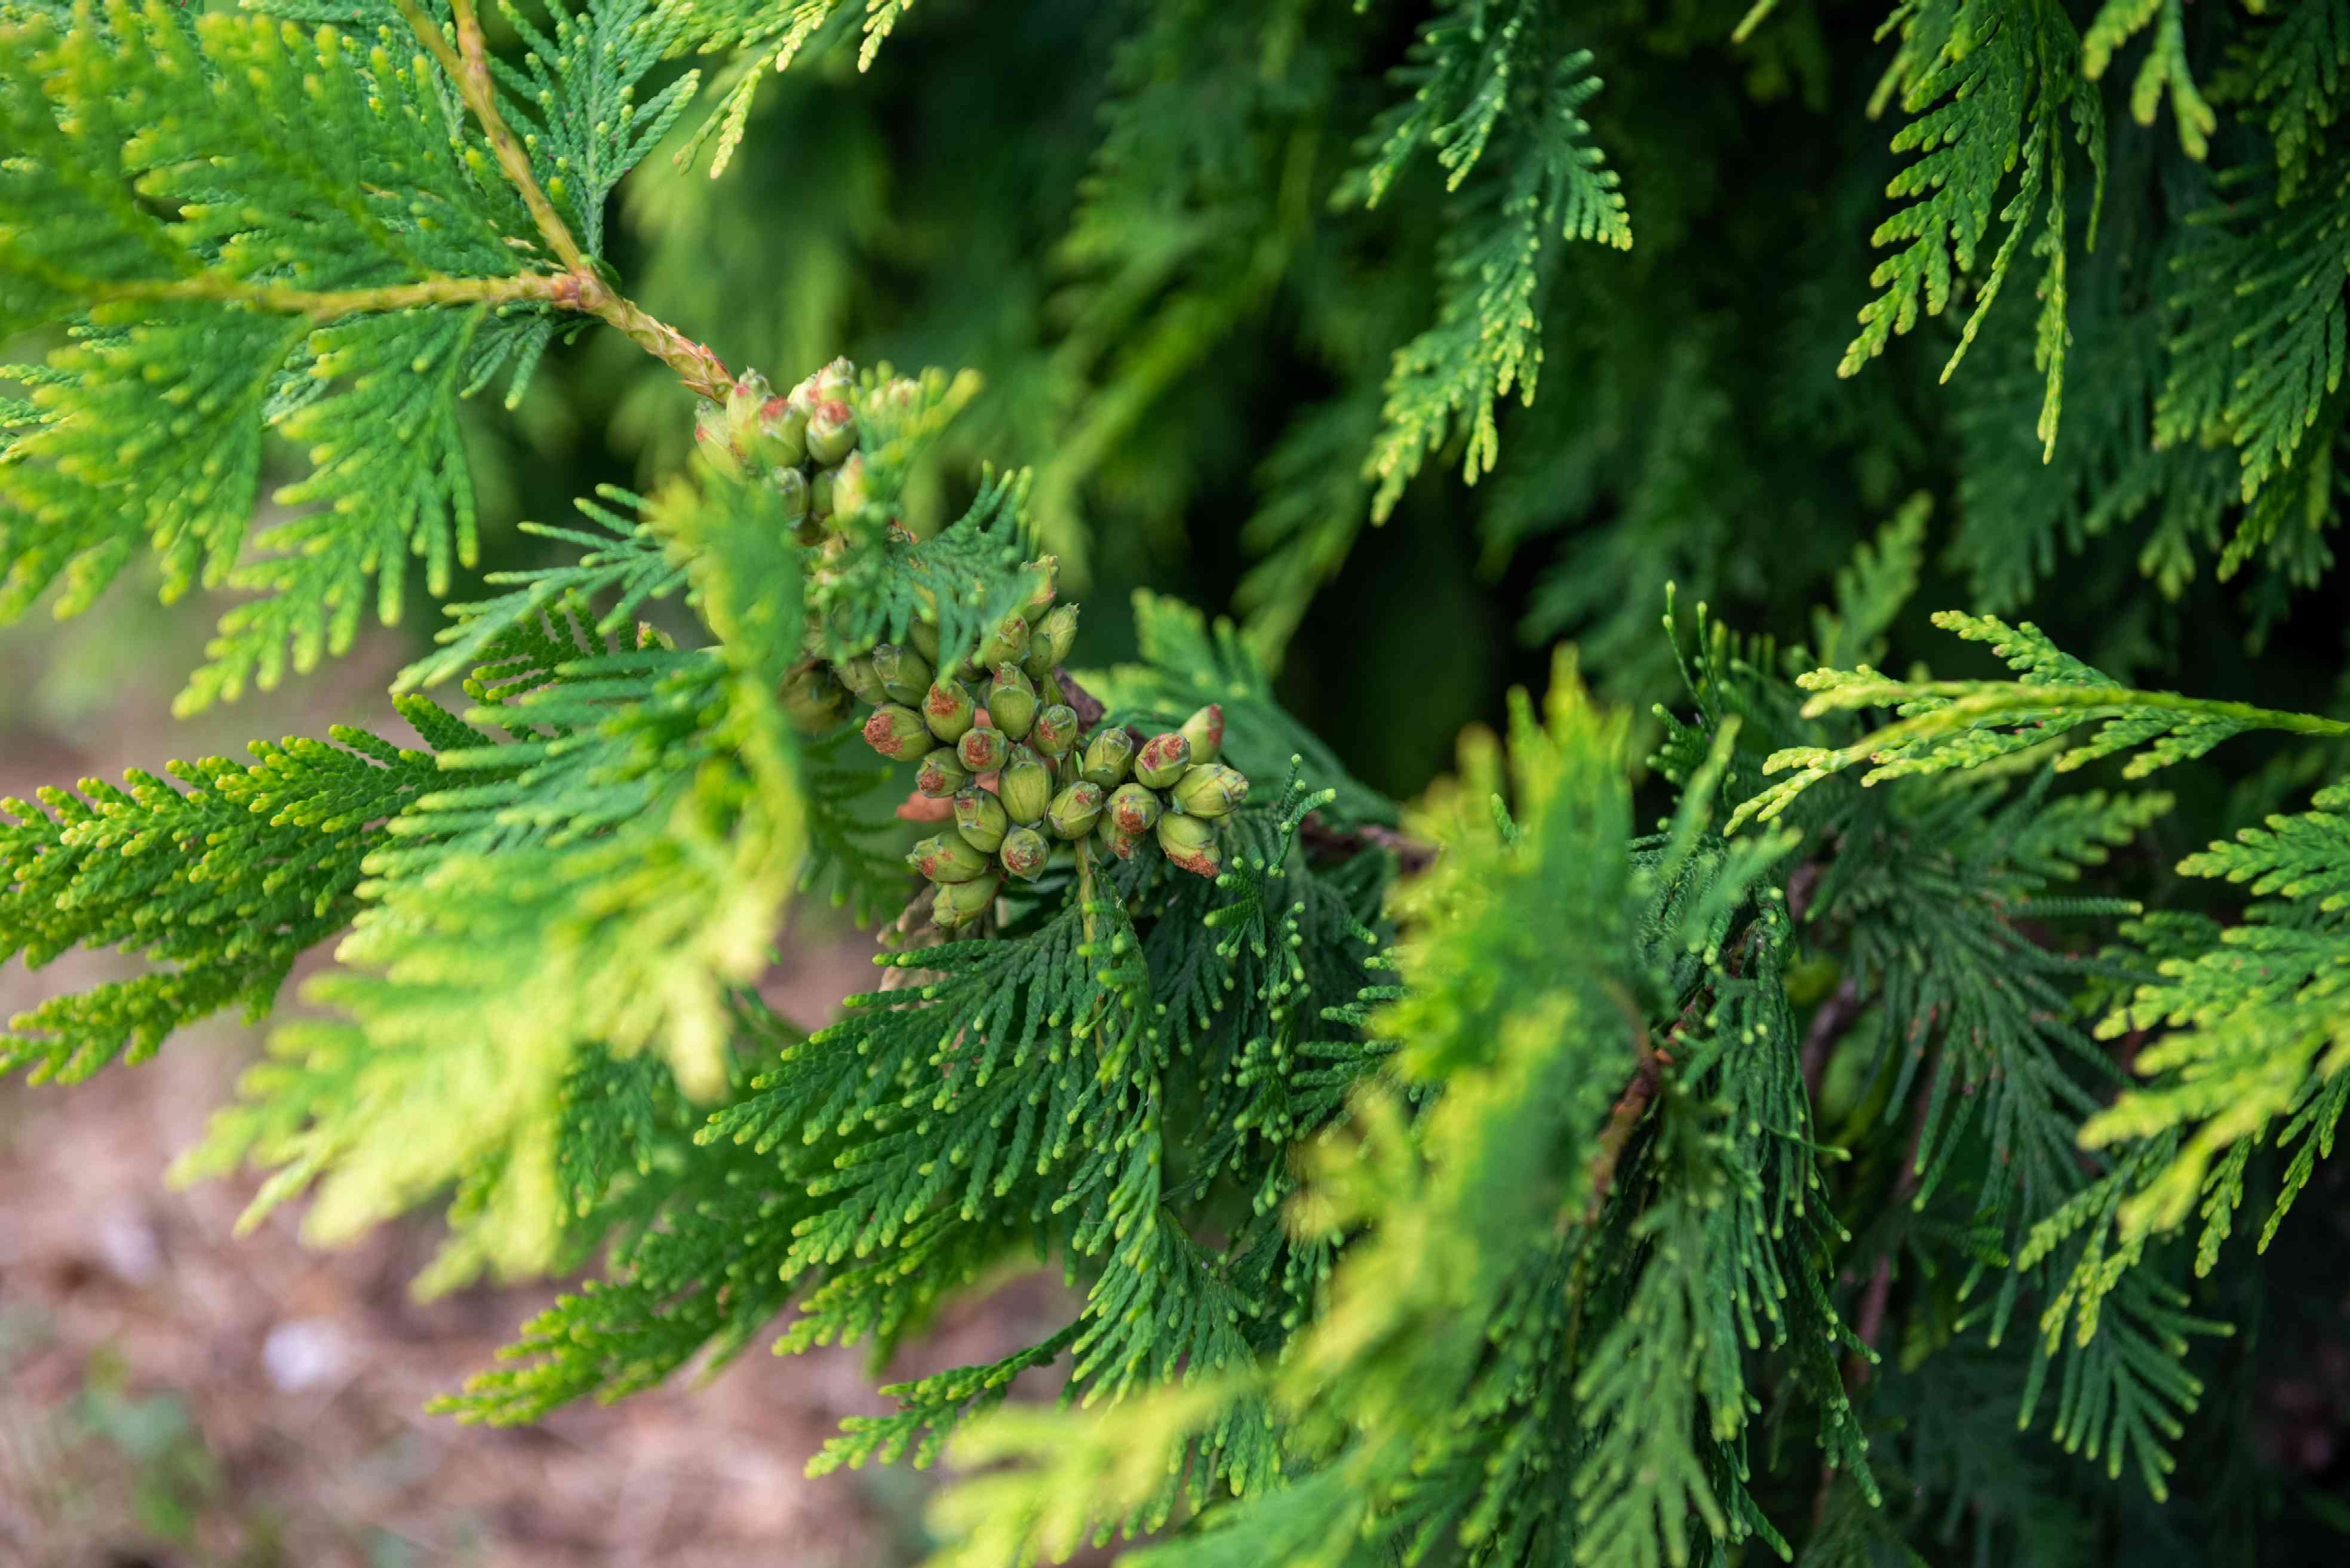 Giant arborvitae branches with small scale-like leaves surrounding tiny green seeds